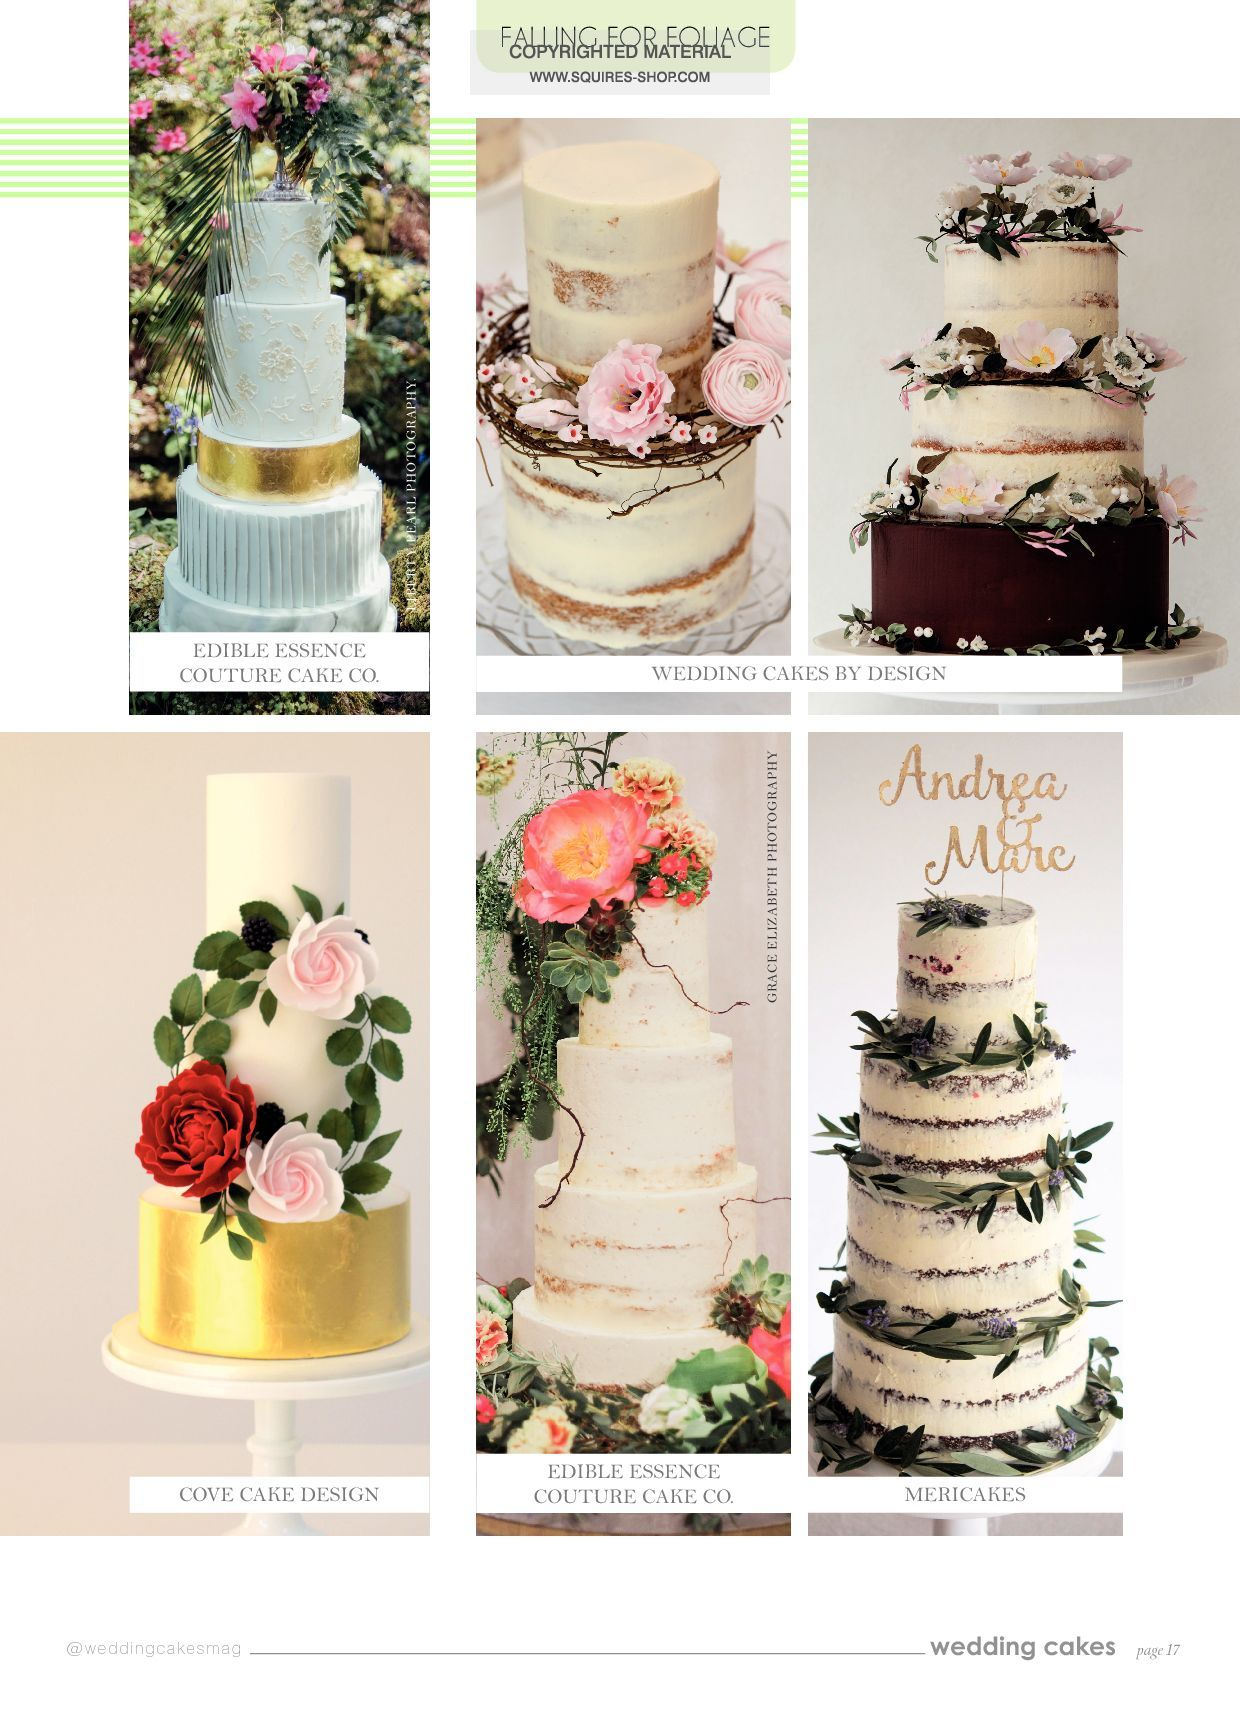 Wedding Cakes Magazine Spring 2017 | Squires Kitchen Shop